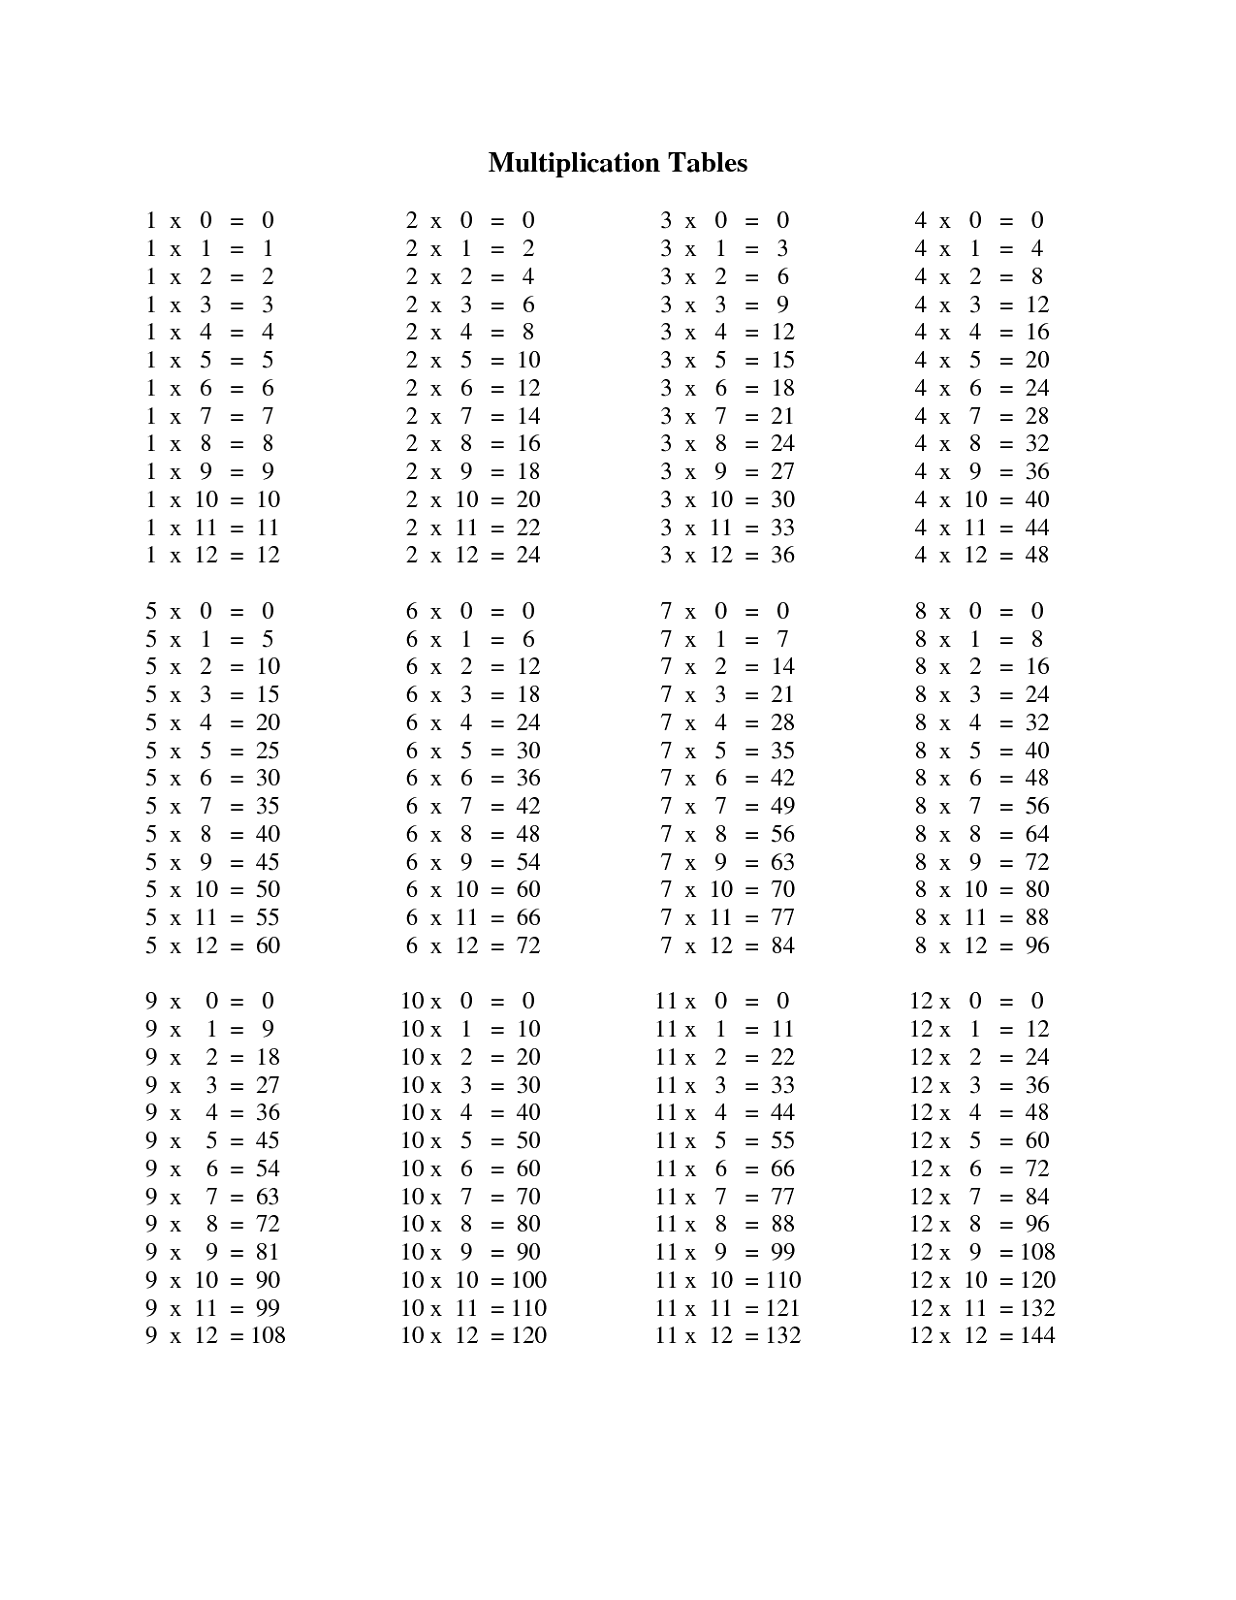 Multiplication tables to 12 proletariatblog for 12 times table worksheet